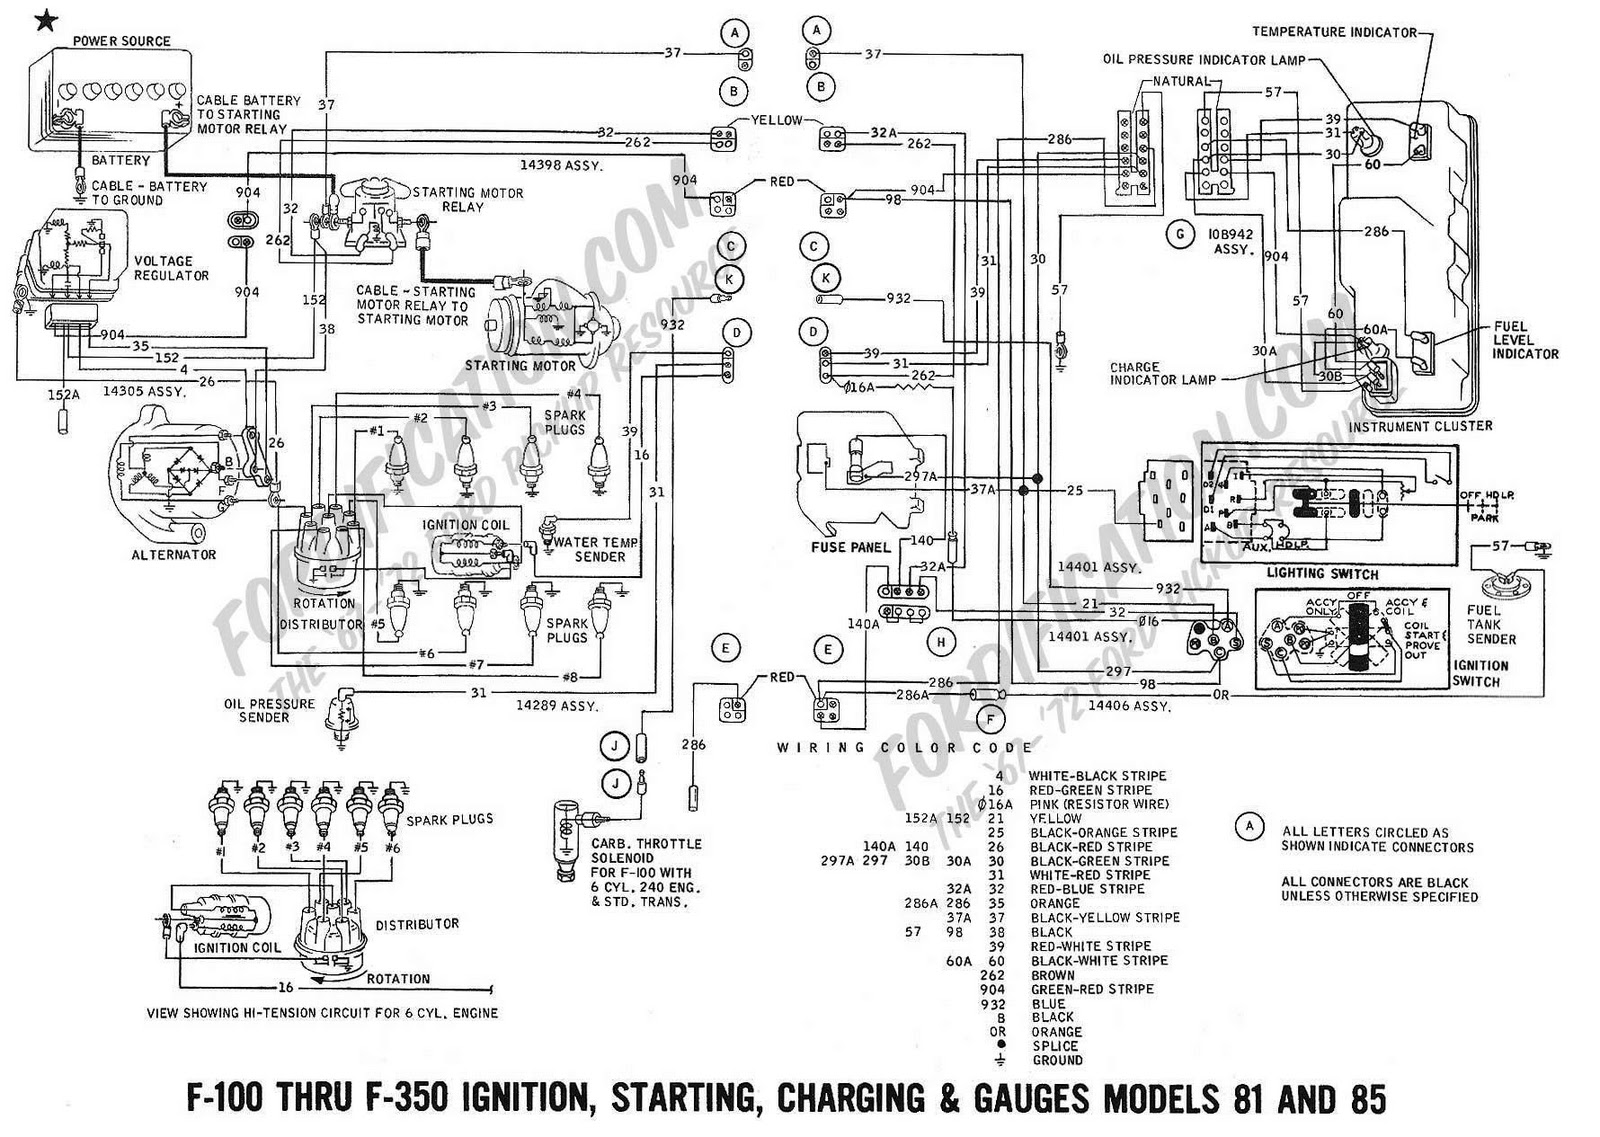 1969 Ford F100 F350 Ignition Starting on 1972 dodge truck wiring diagrams